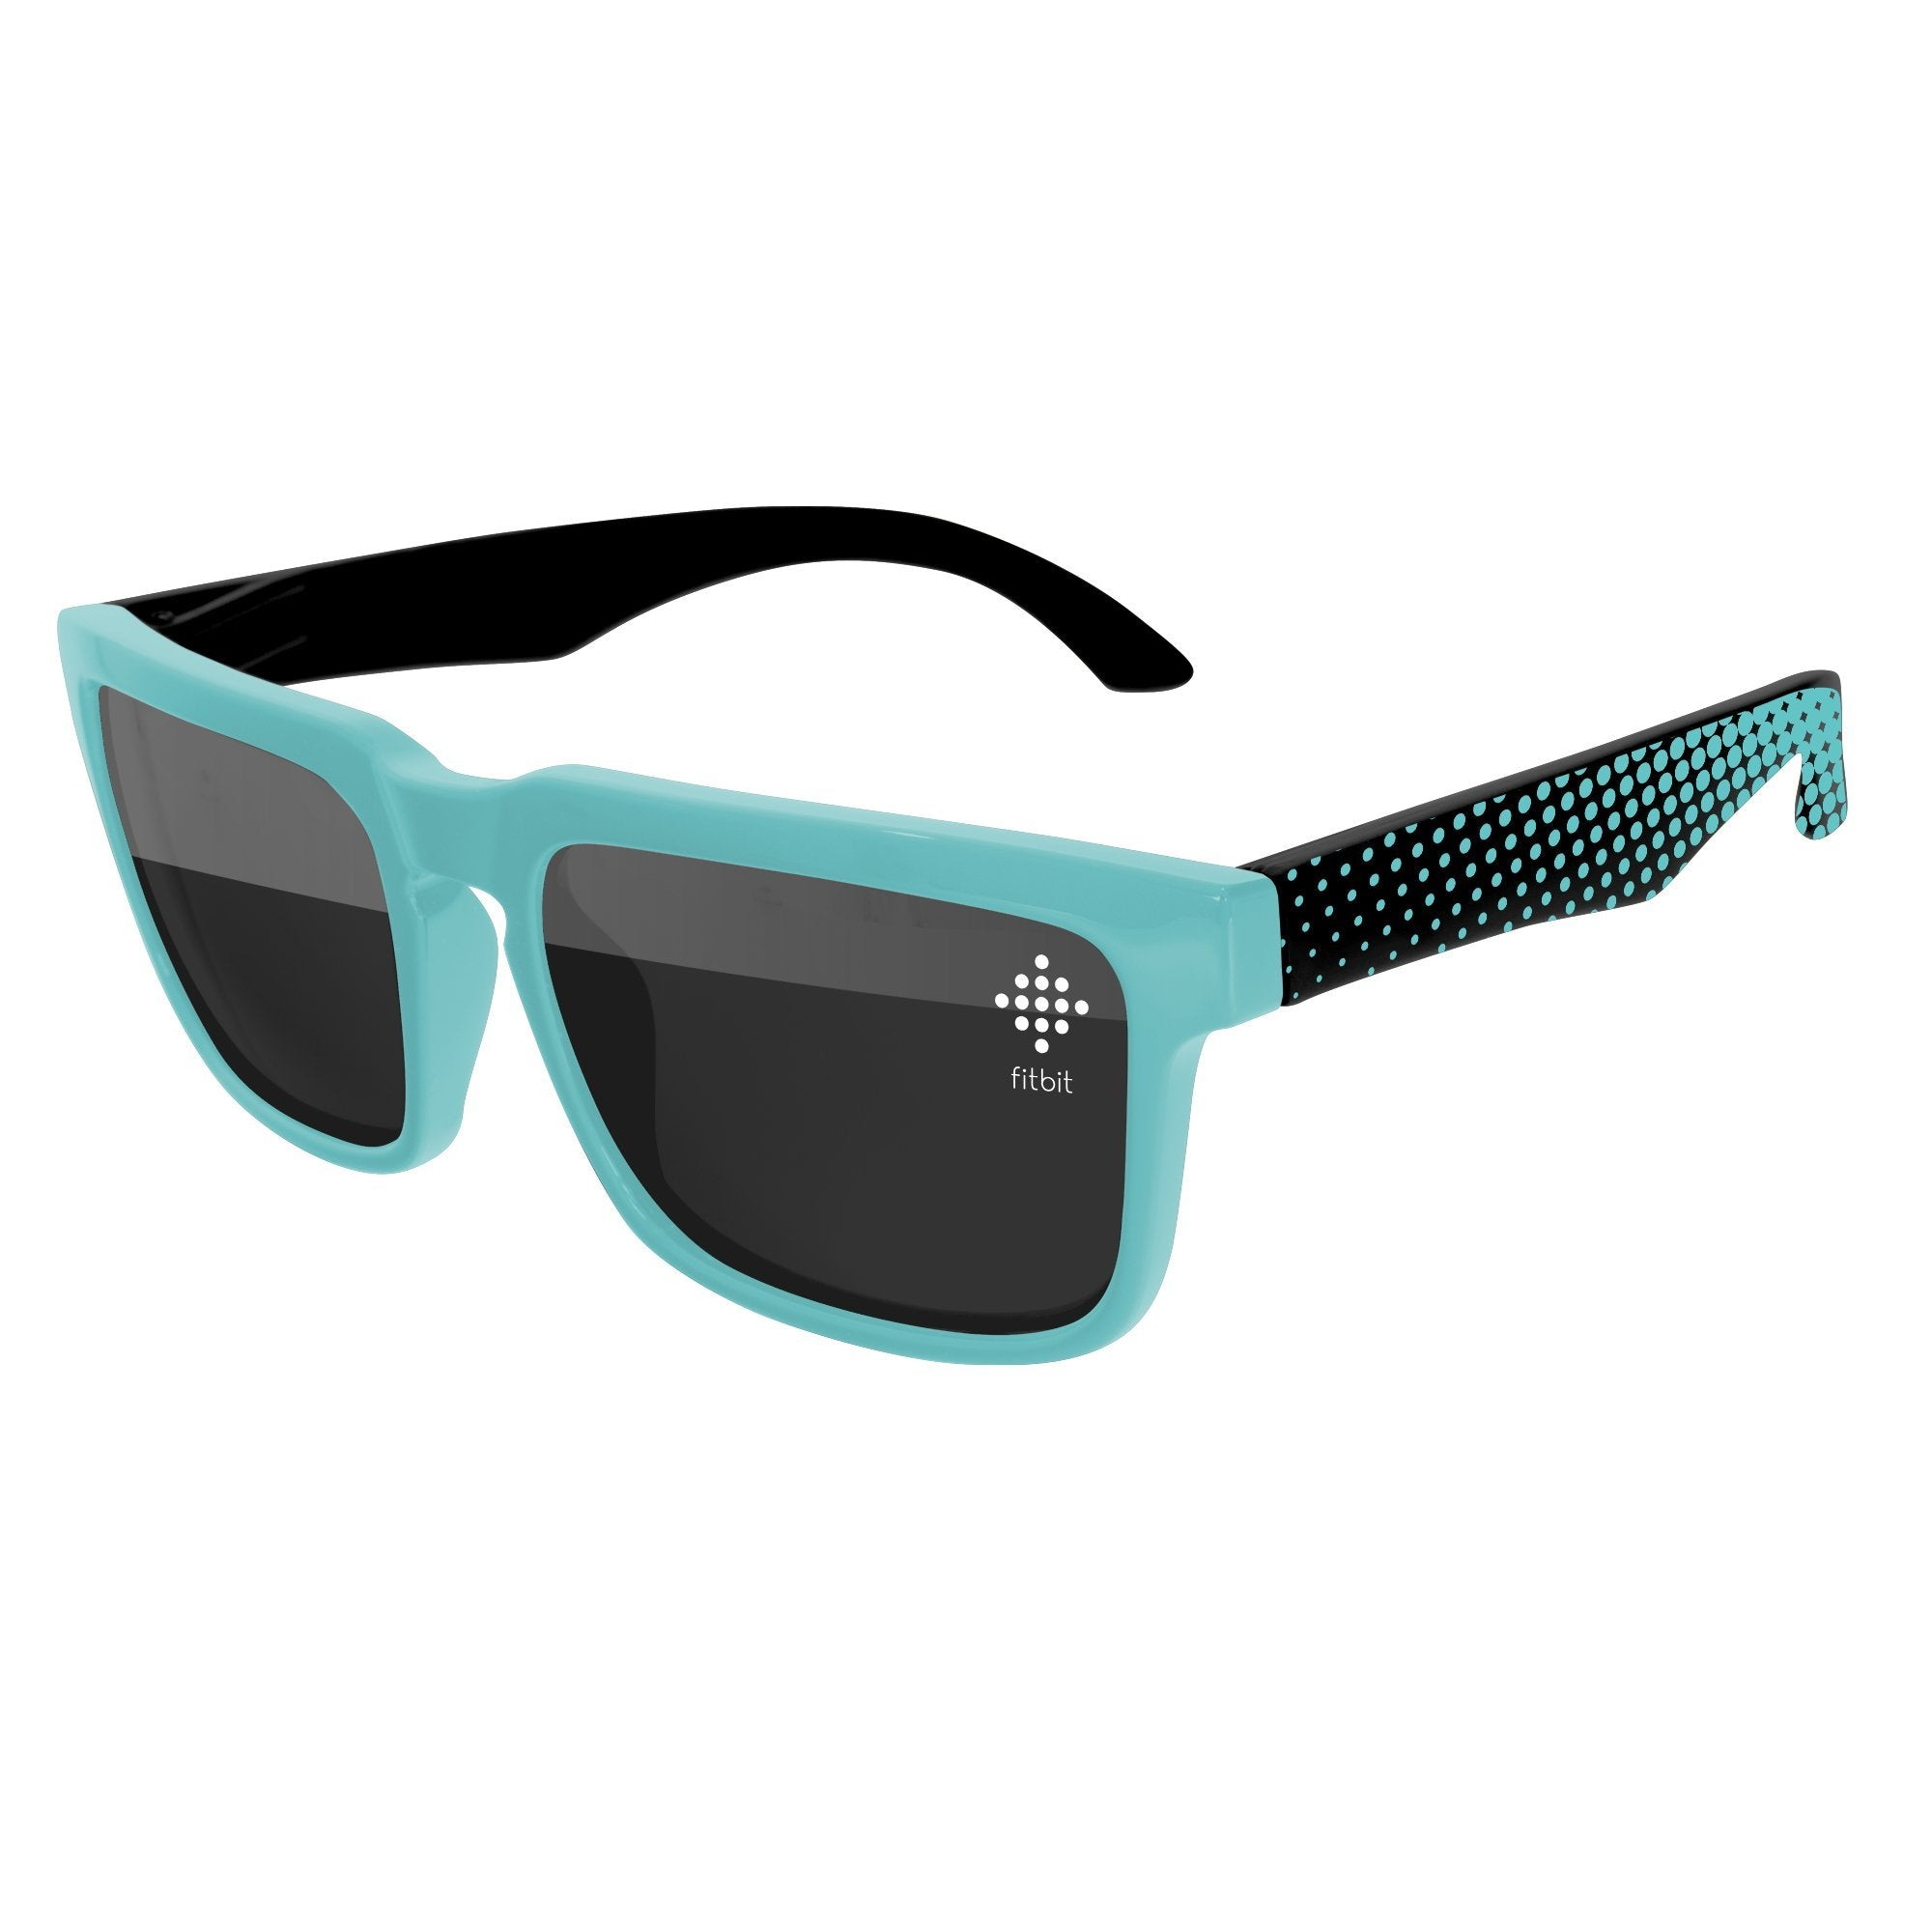 Wellness - HD532 - Heat Promotional Sunglasses w/ 1-color lens imprint & 1-color extended arm imprint